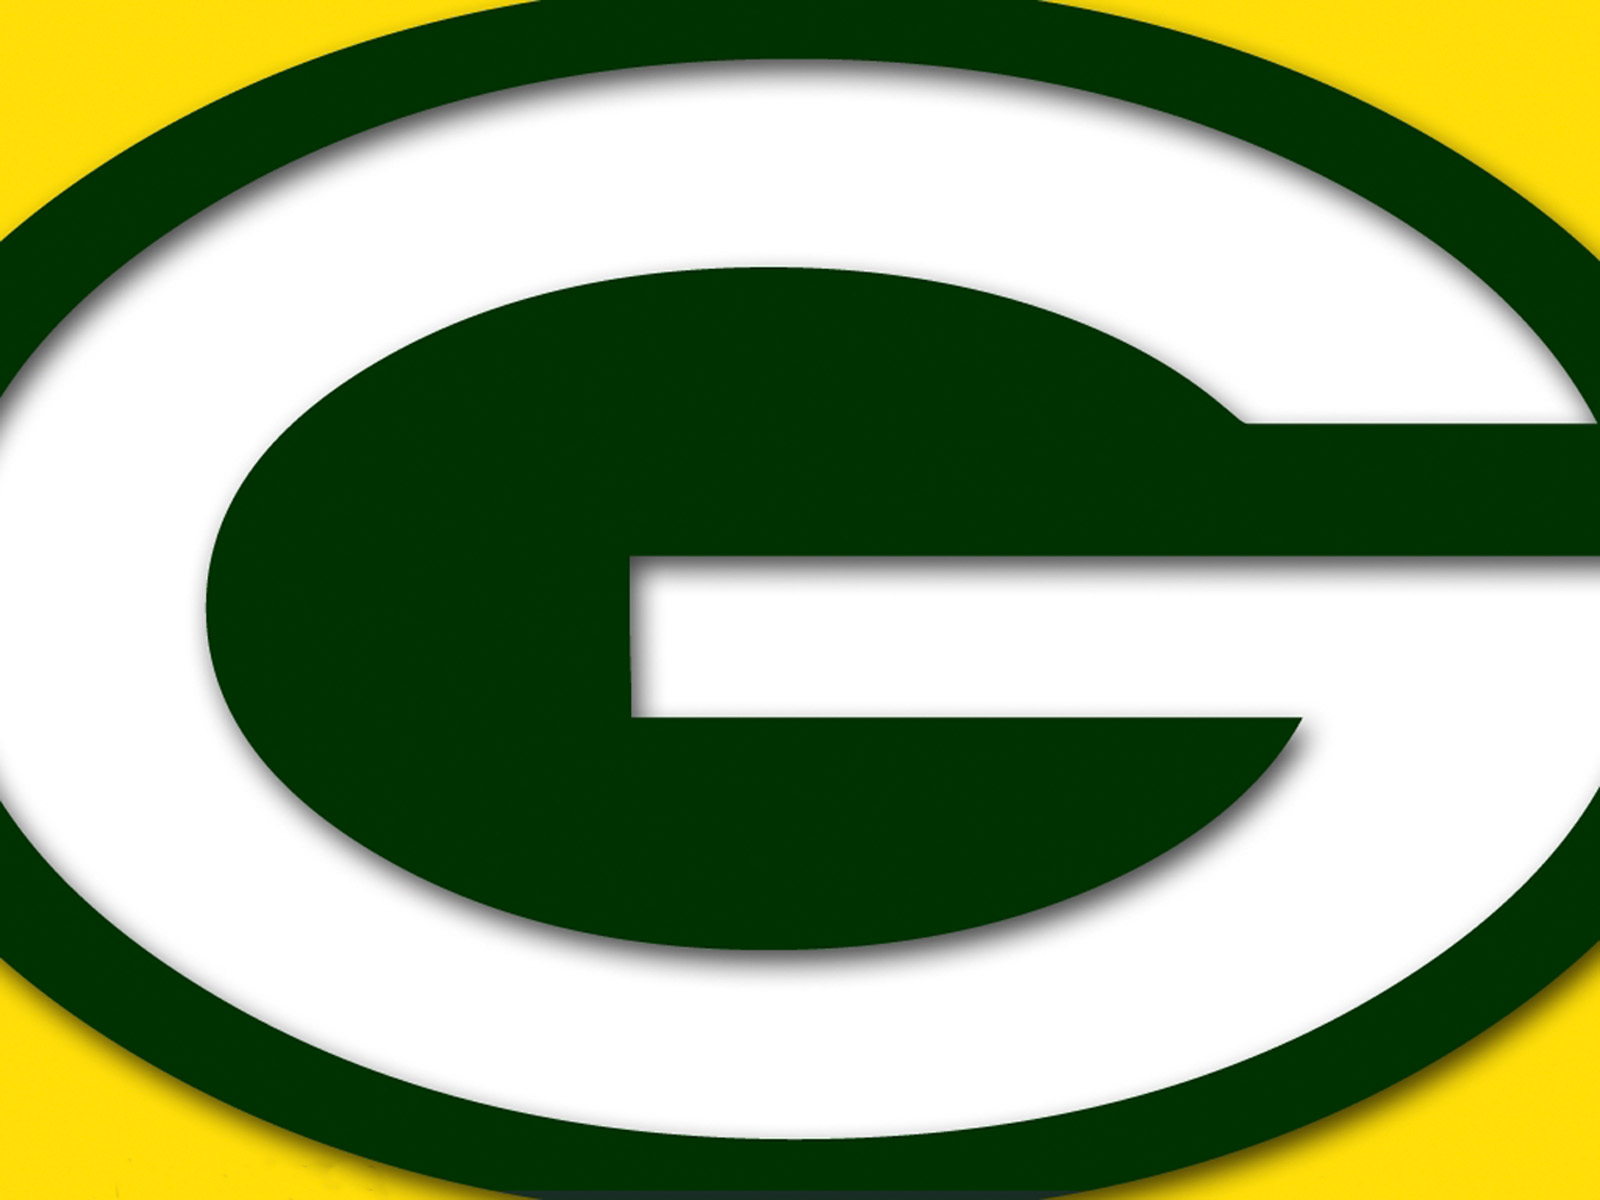 Free Green Bay Packers Stencil, Download Free Clip Art, Free Clip.